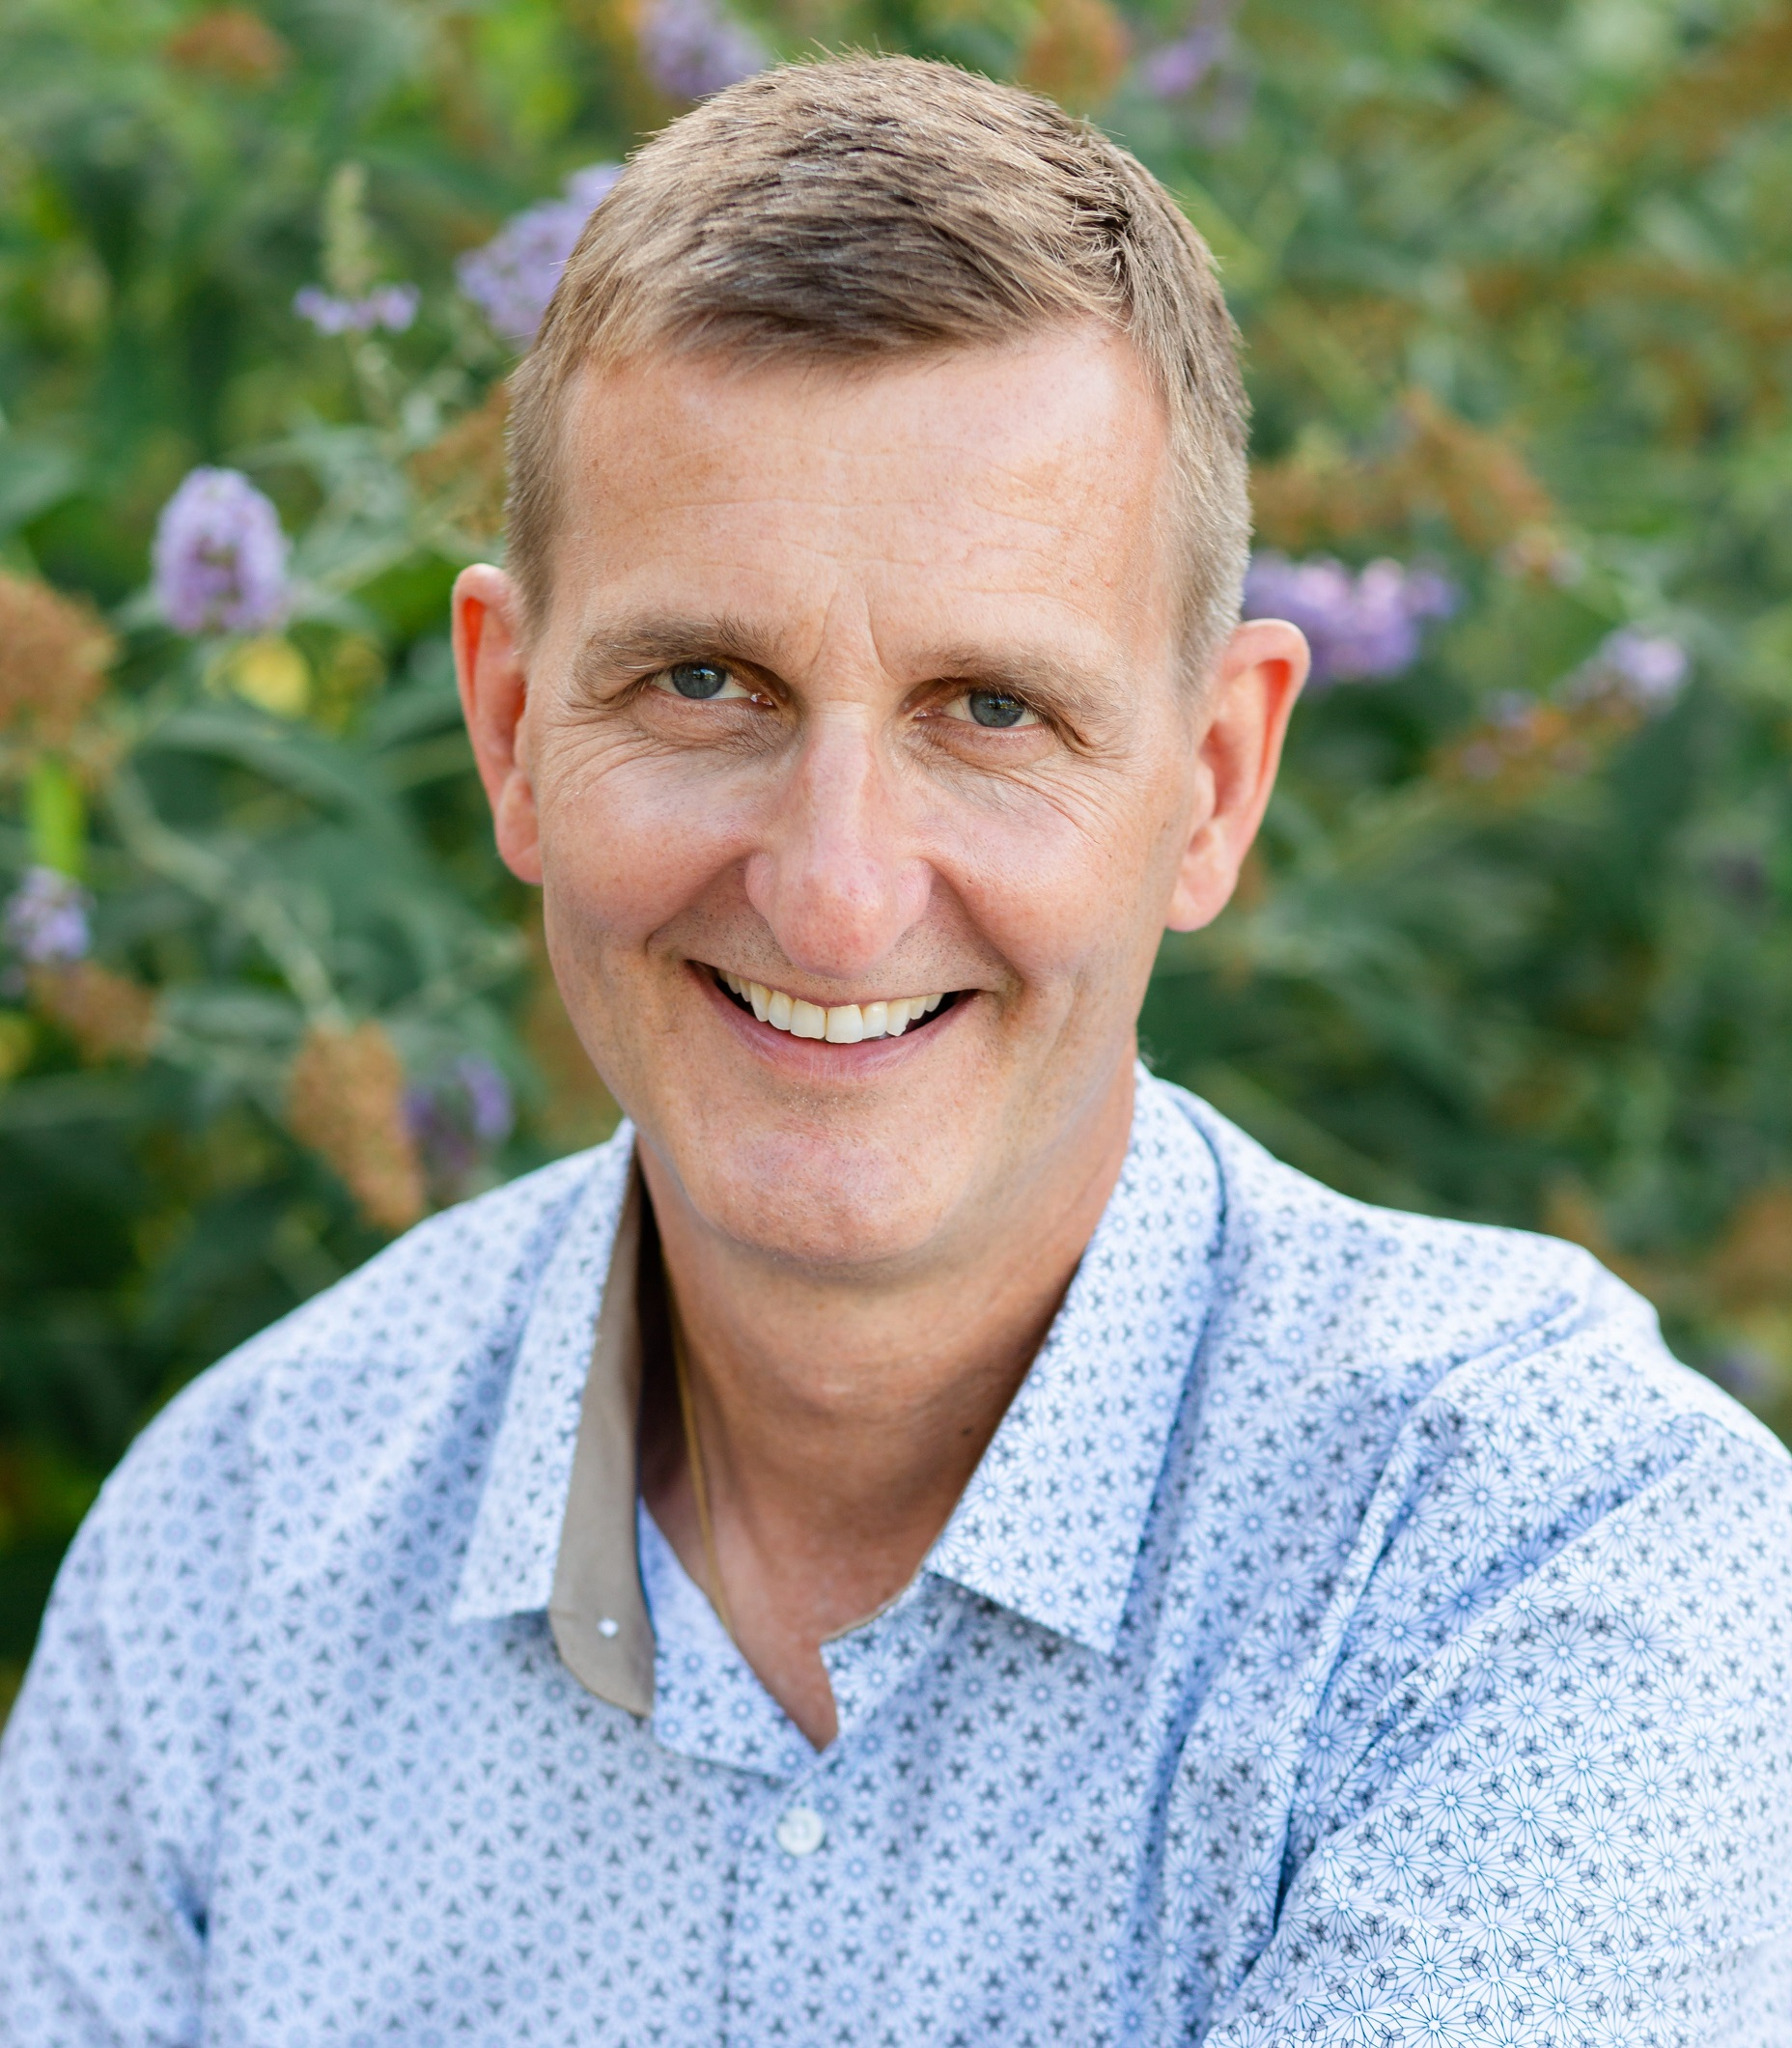 Making Peace with Fear and Anxiety With Dr. Friedemann Schaub